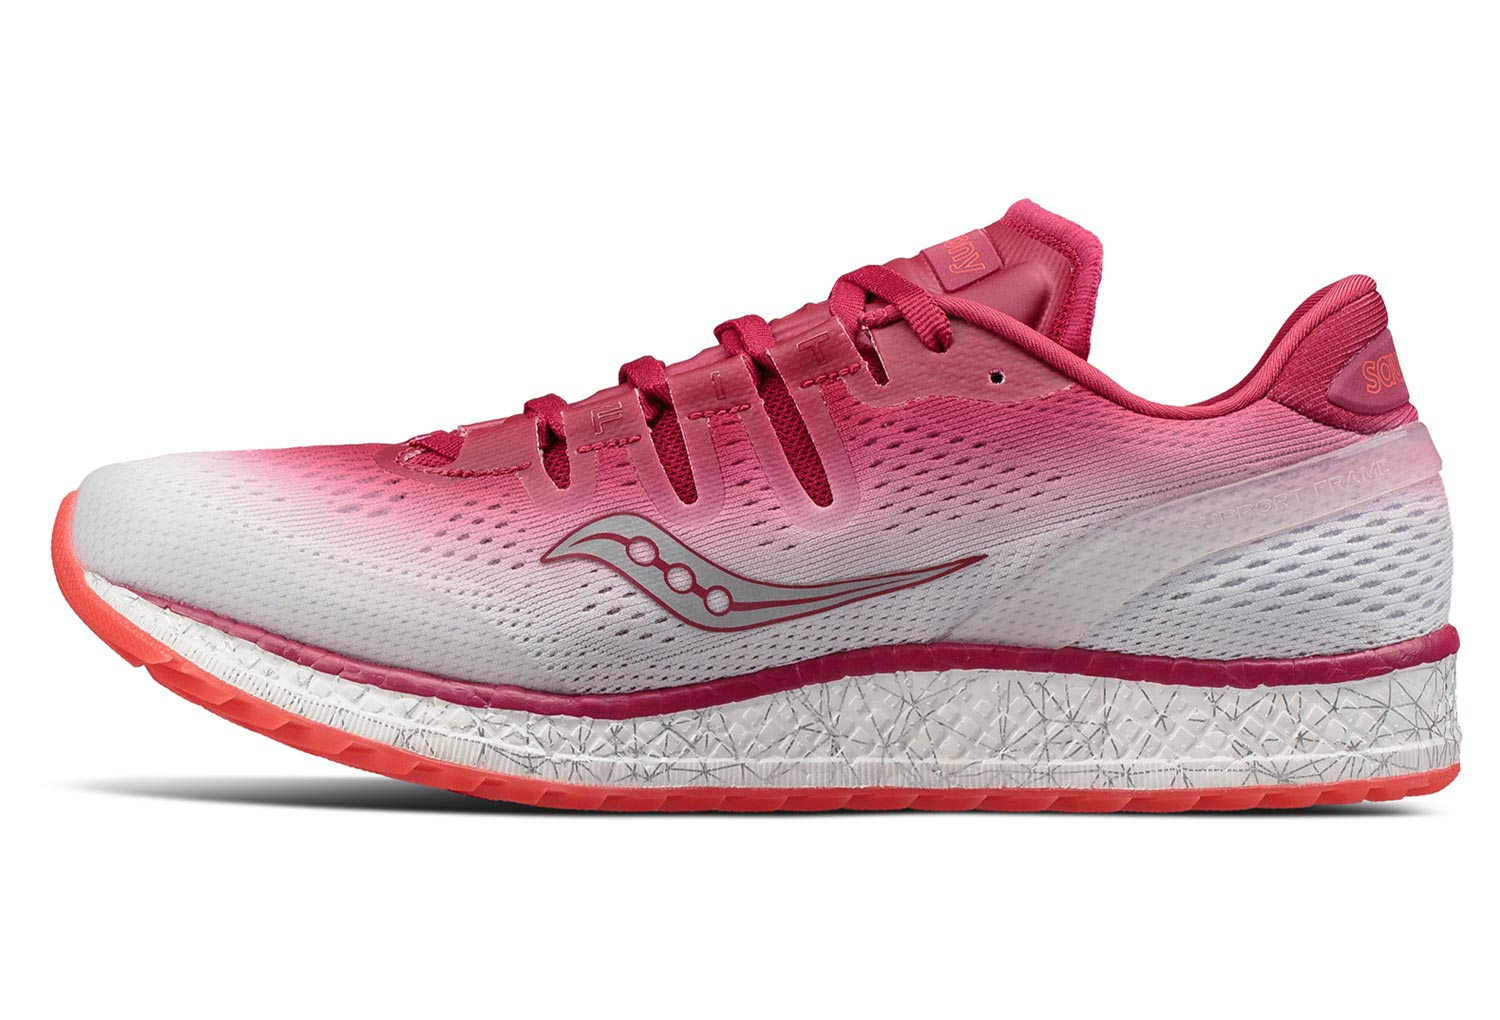 12 Best Women's Saucony Running Shoes for 2018